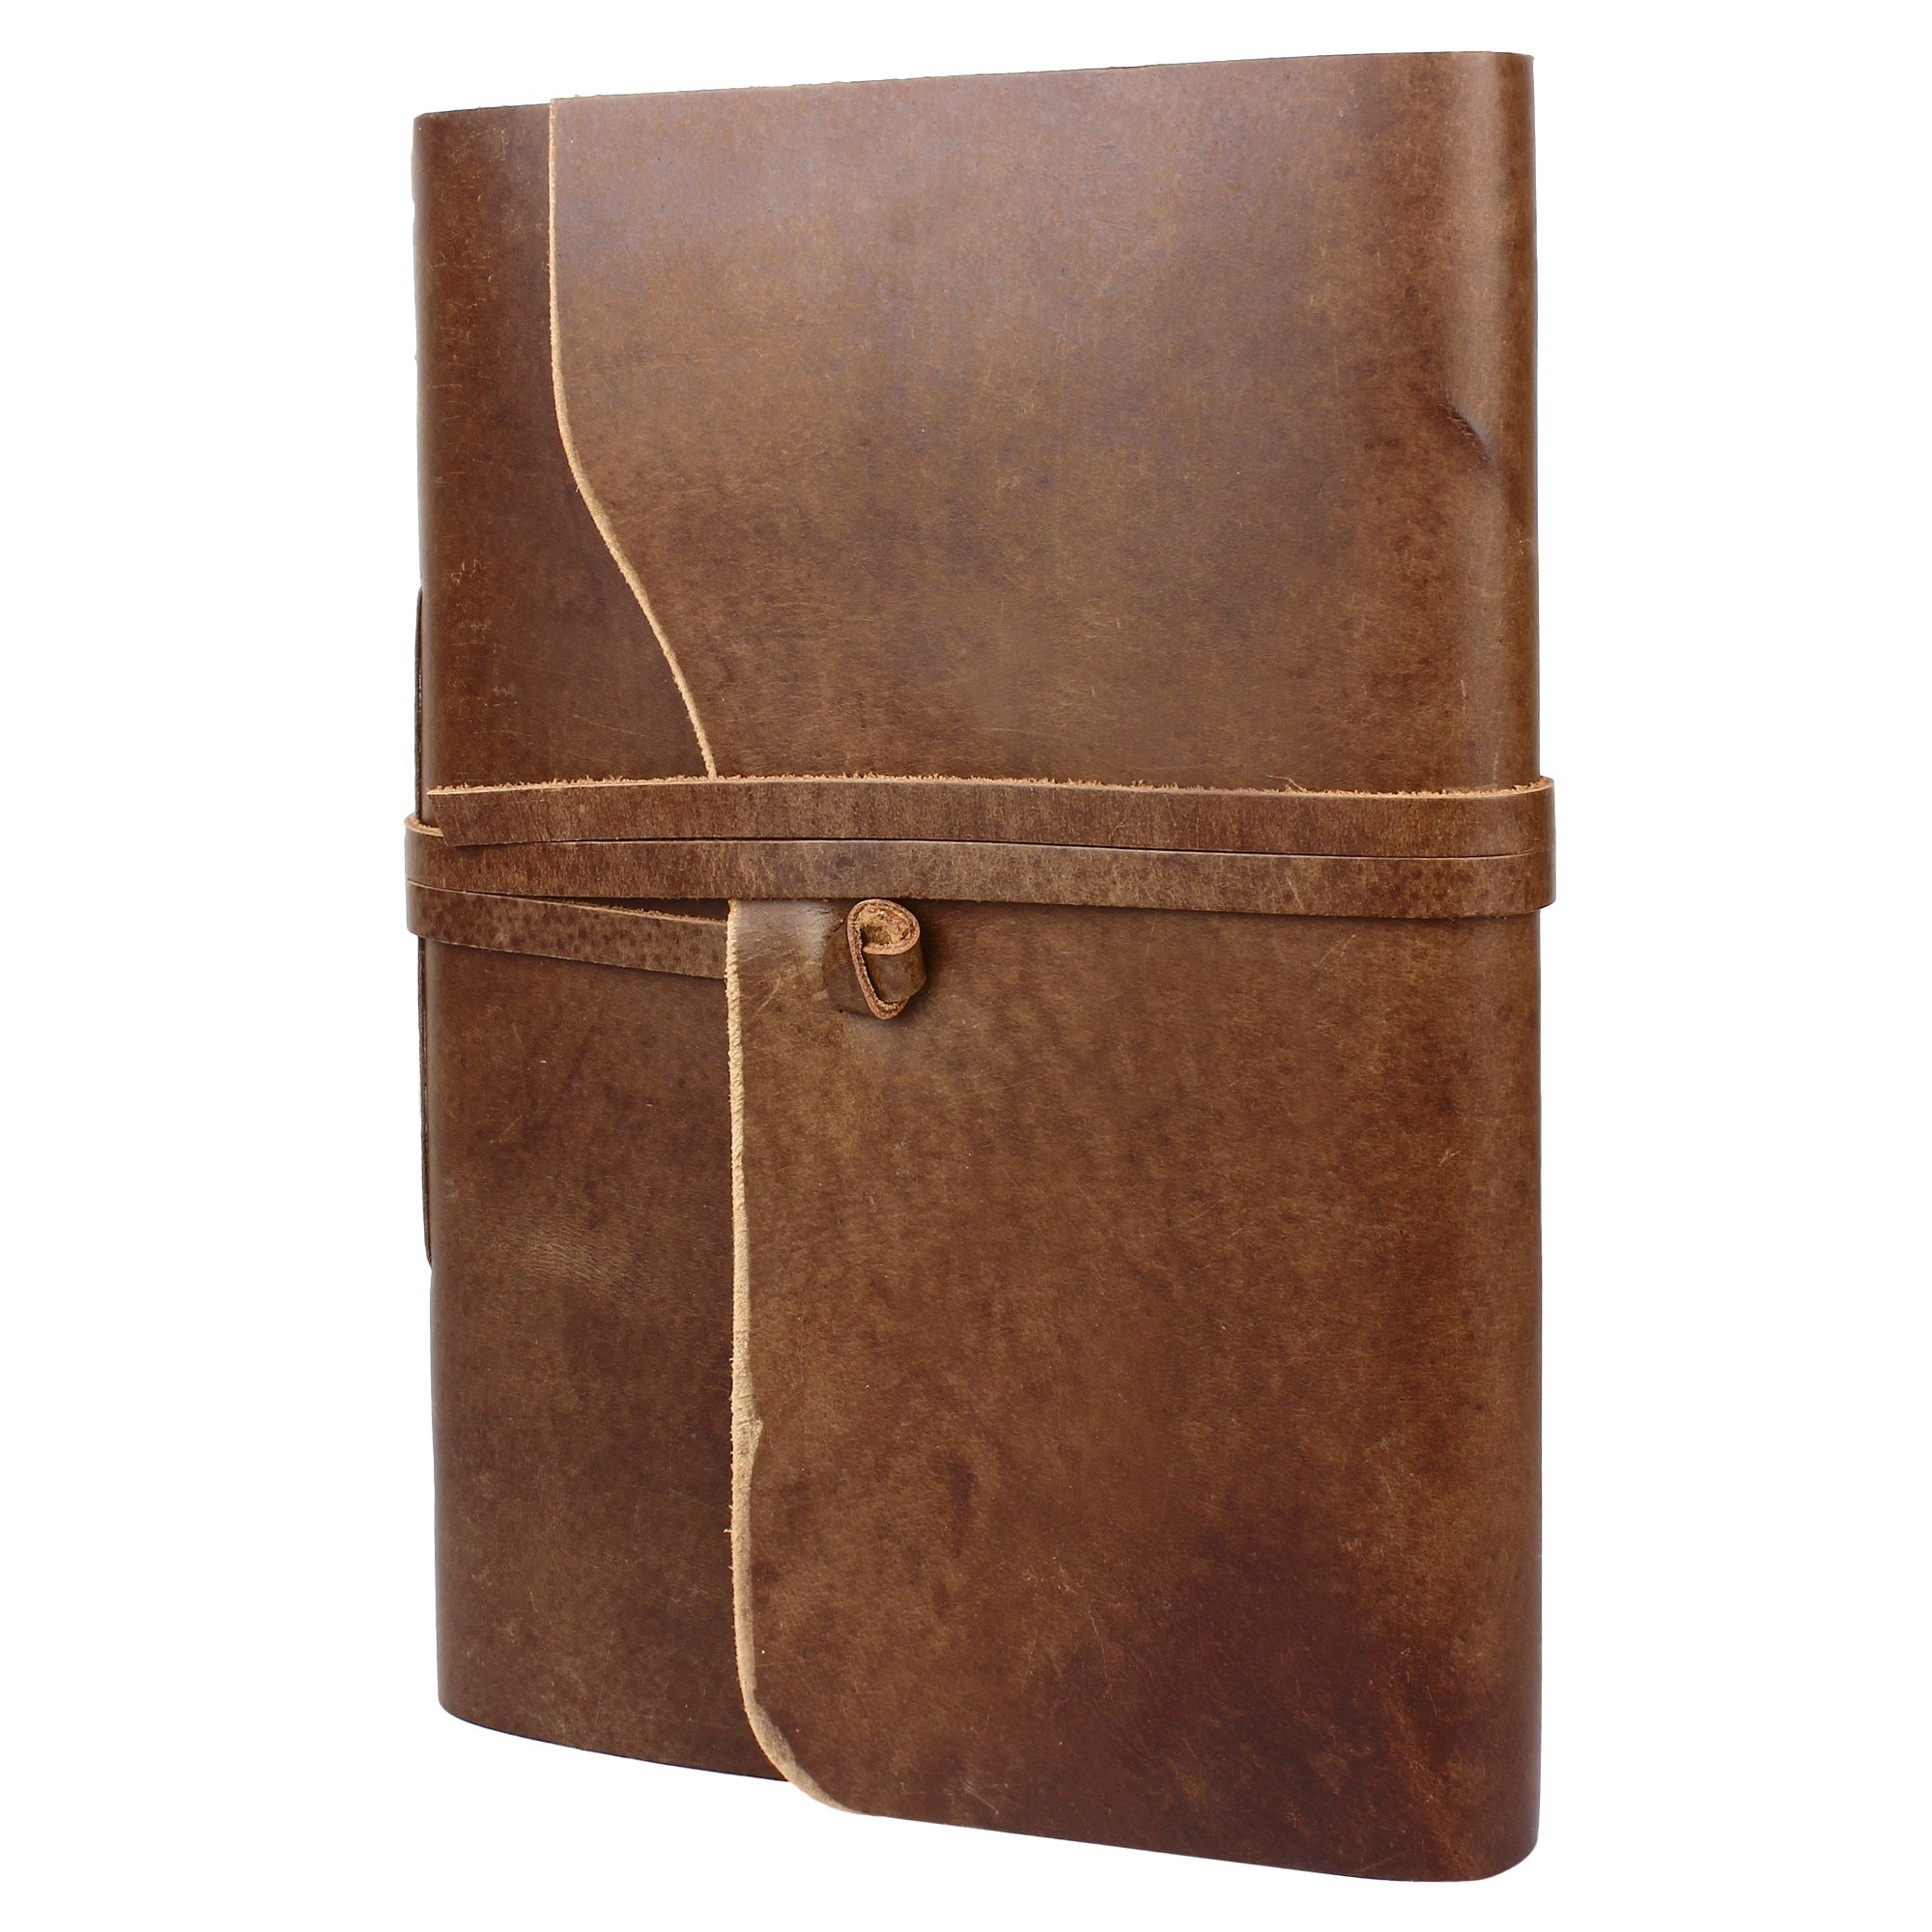 Rustic Town Genuine Leather Photo Album with Gift Box - Scrapbook Style Pages (Large) by Rustic Town